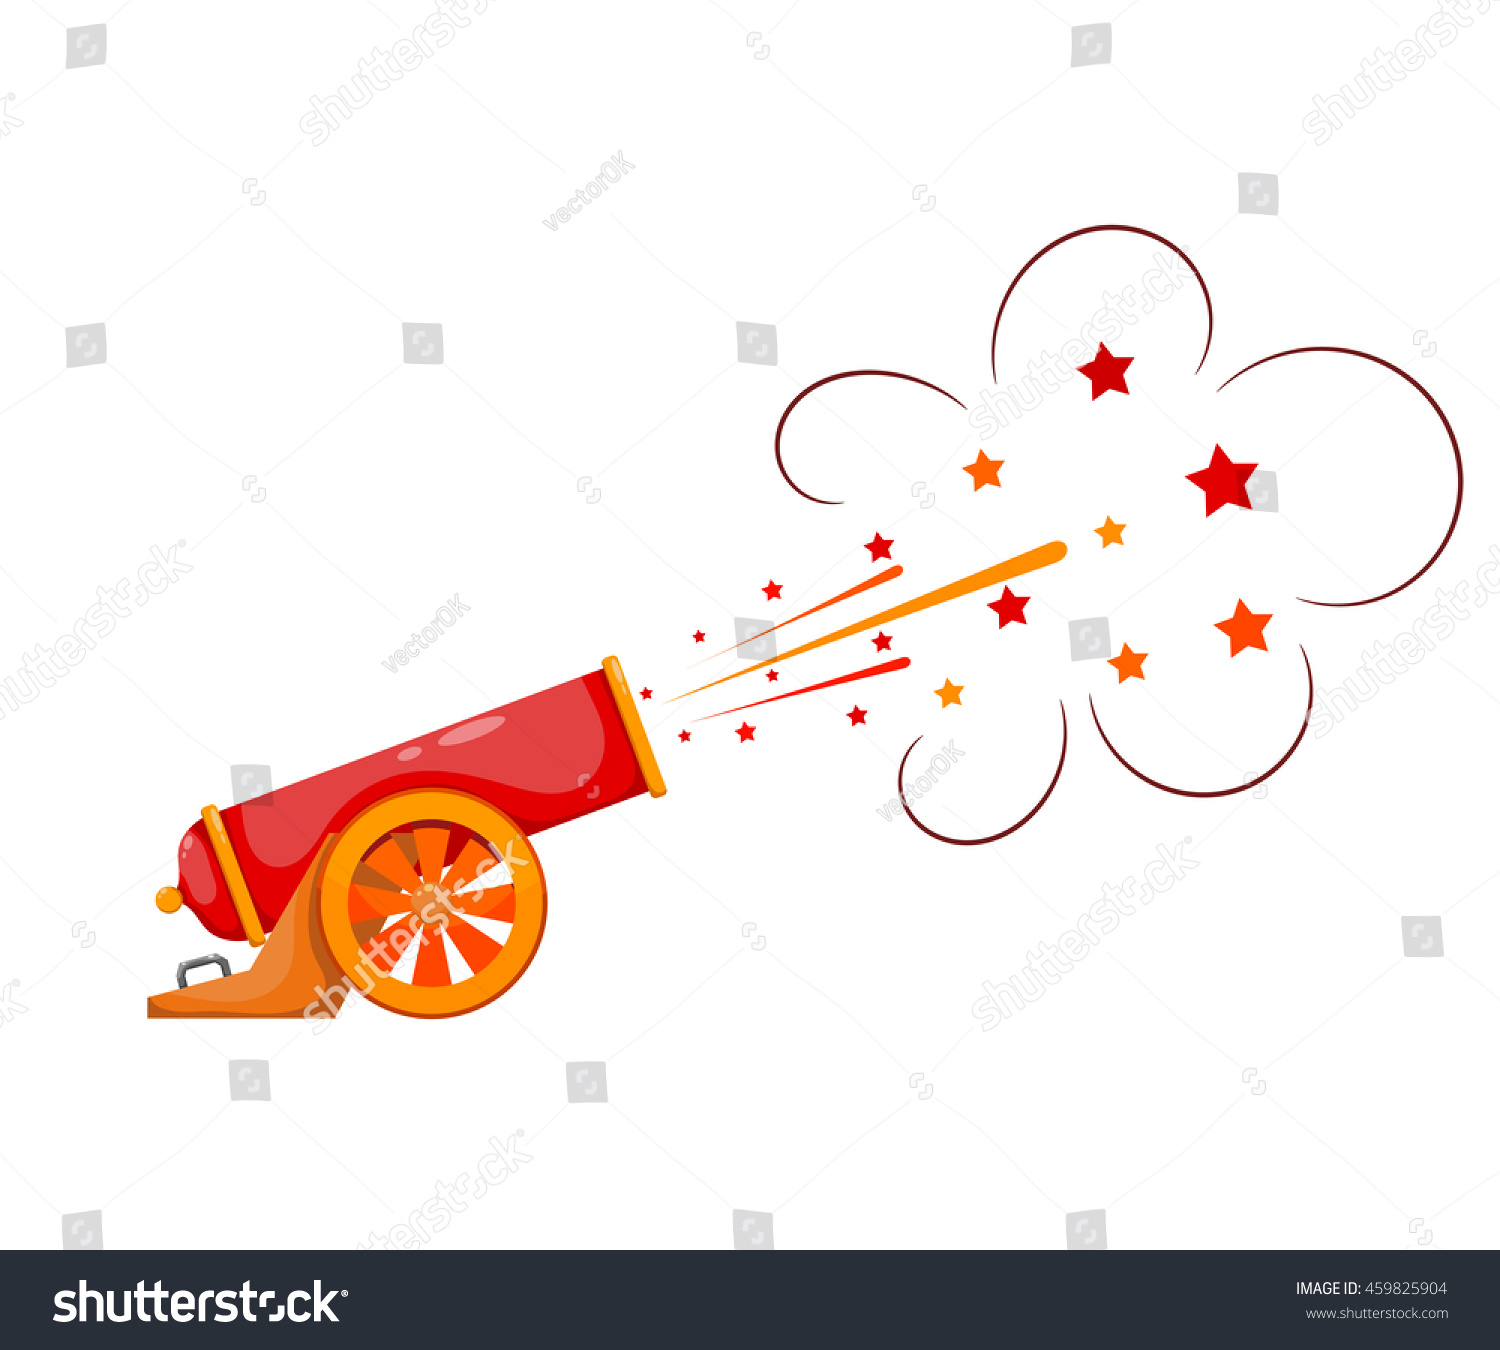 vintage gun color image of medieval cannon firing on a white background cartoon style